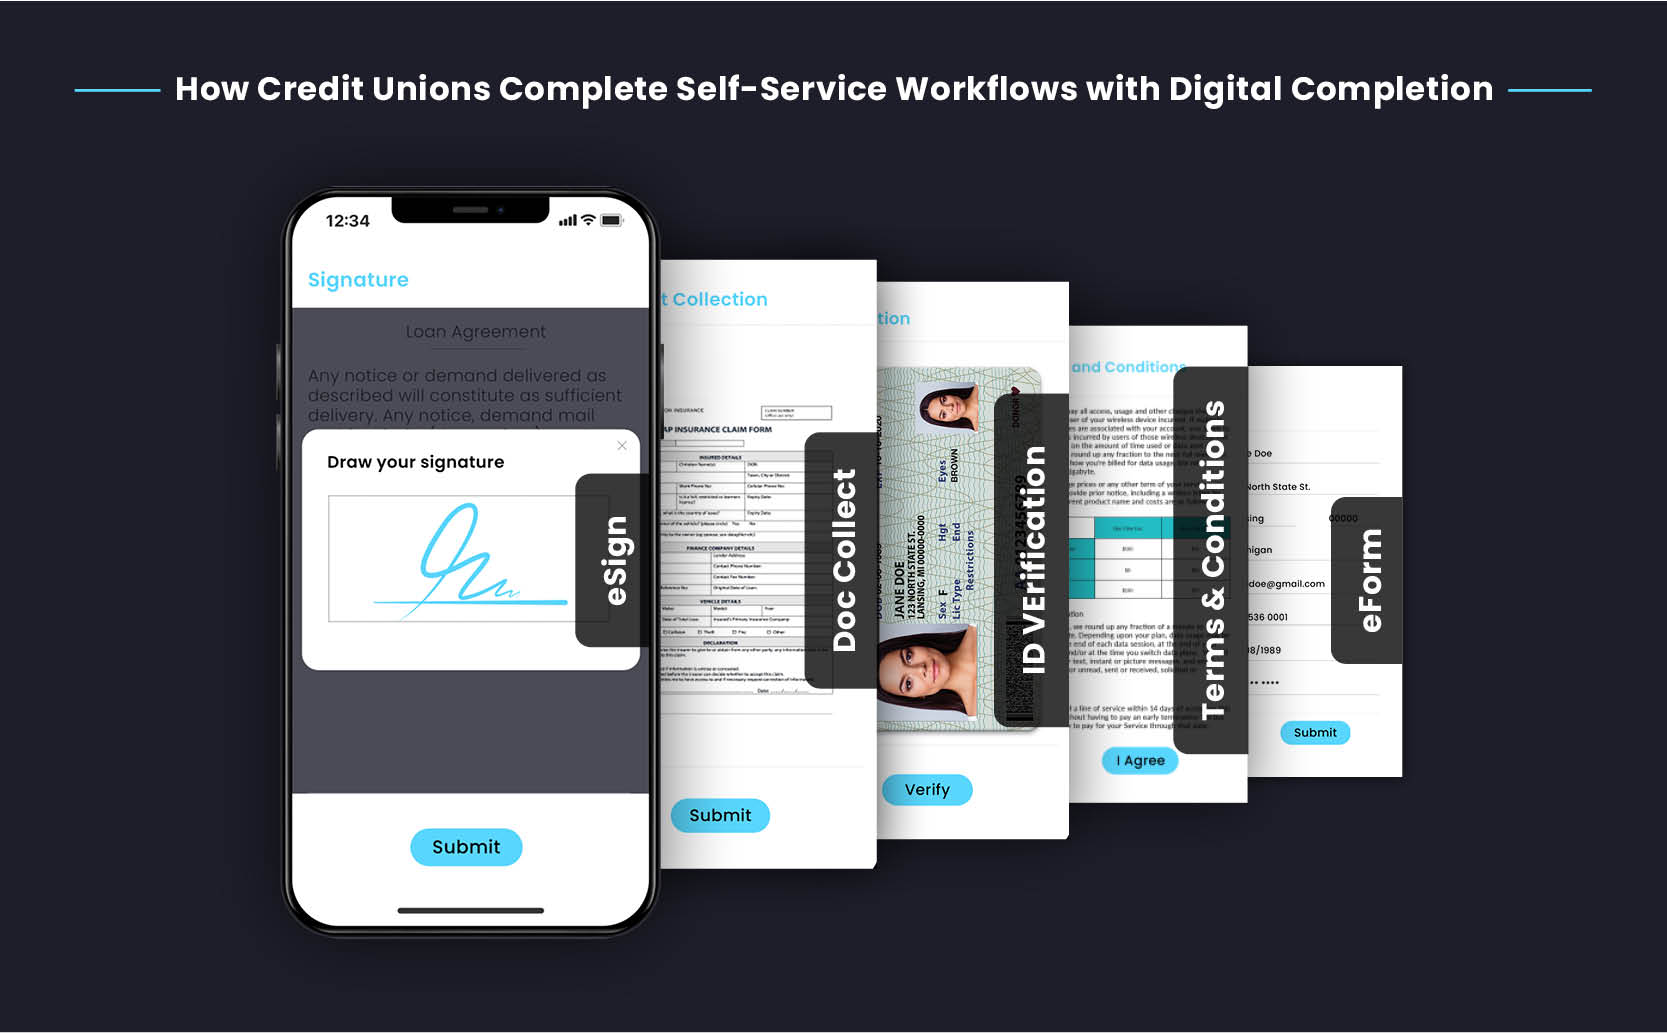 digital-completion-journey-banking-How Credit Unions Complete Self-Service Workflows with Digital Completion